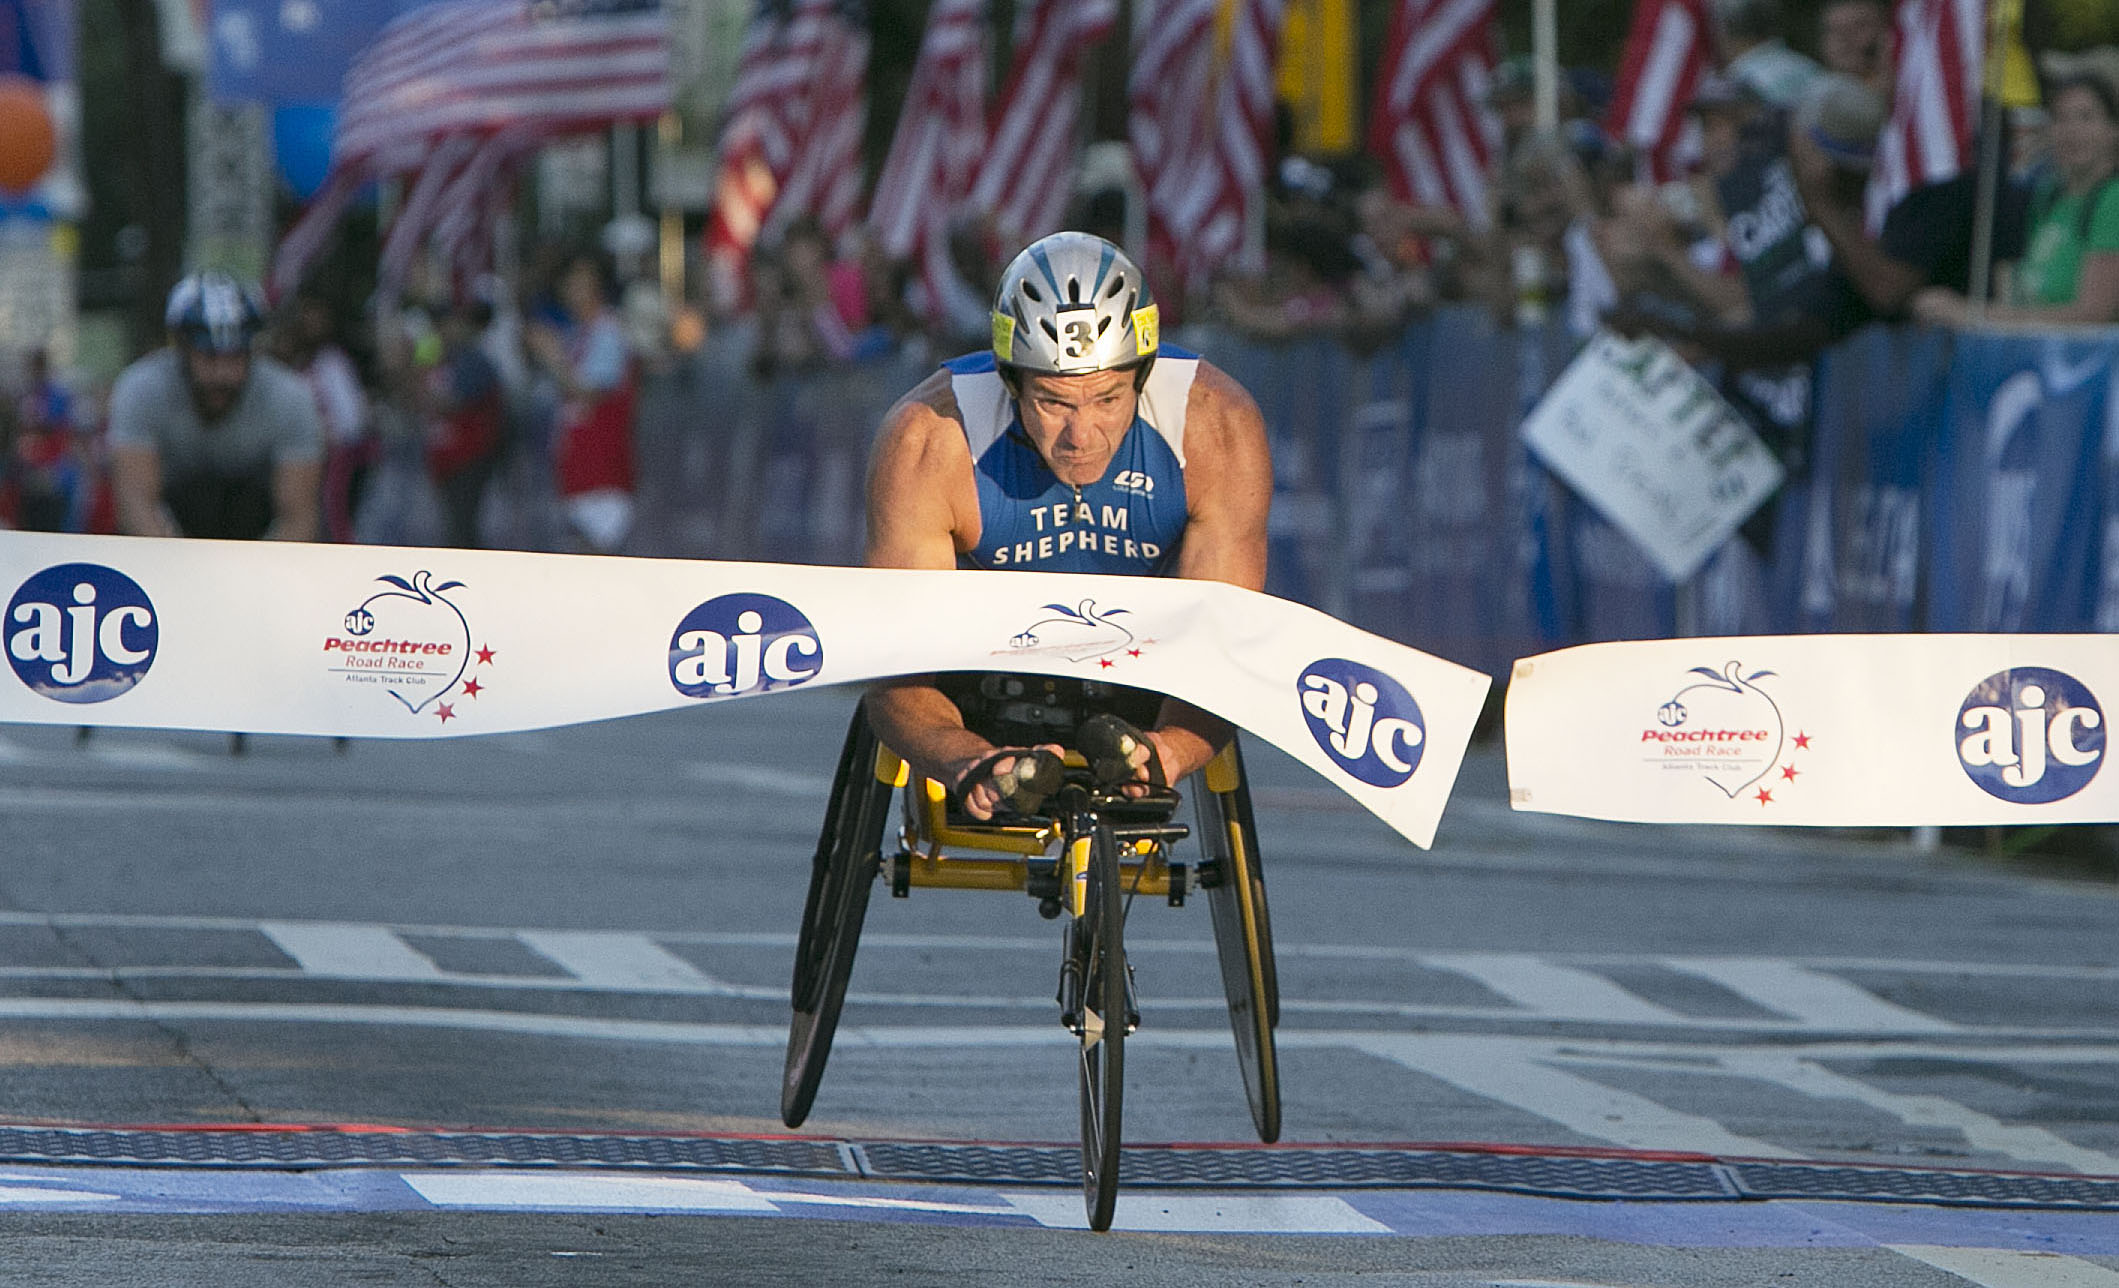 Winners Announced For 2014 Wheelchair Division Of The